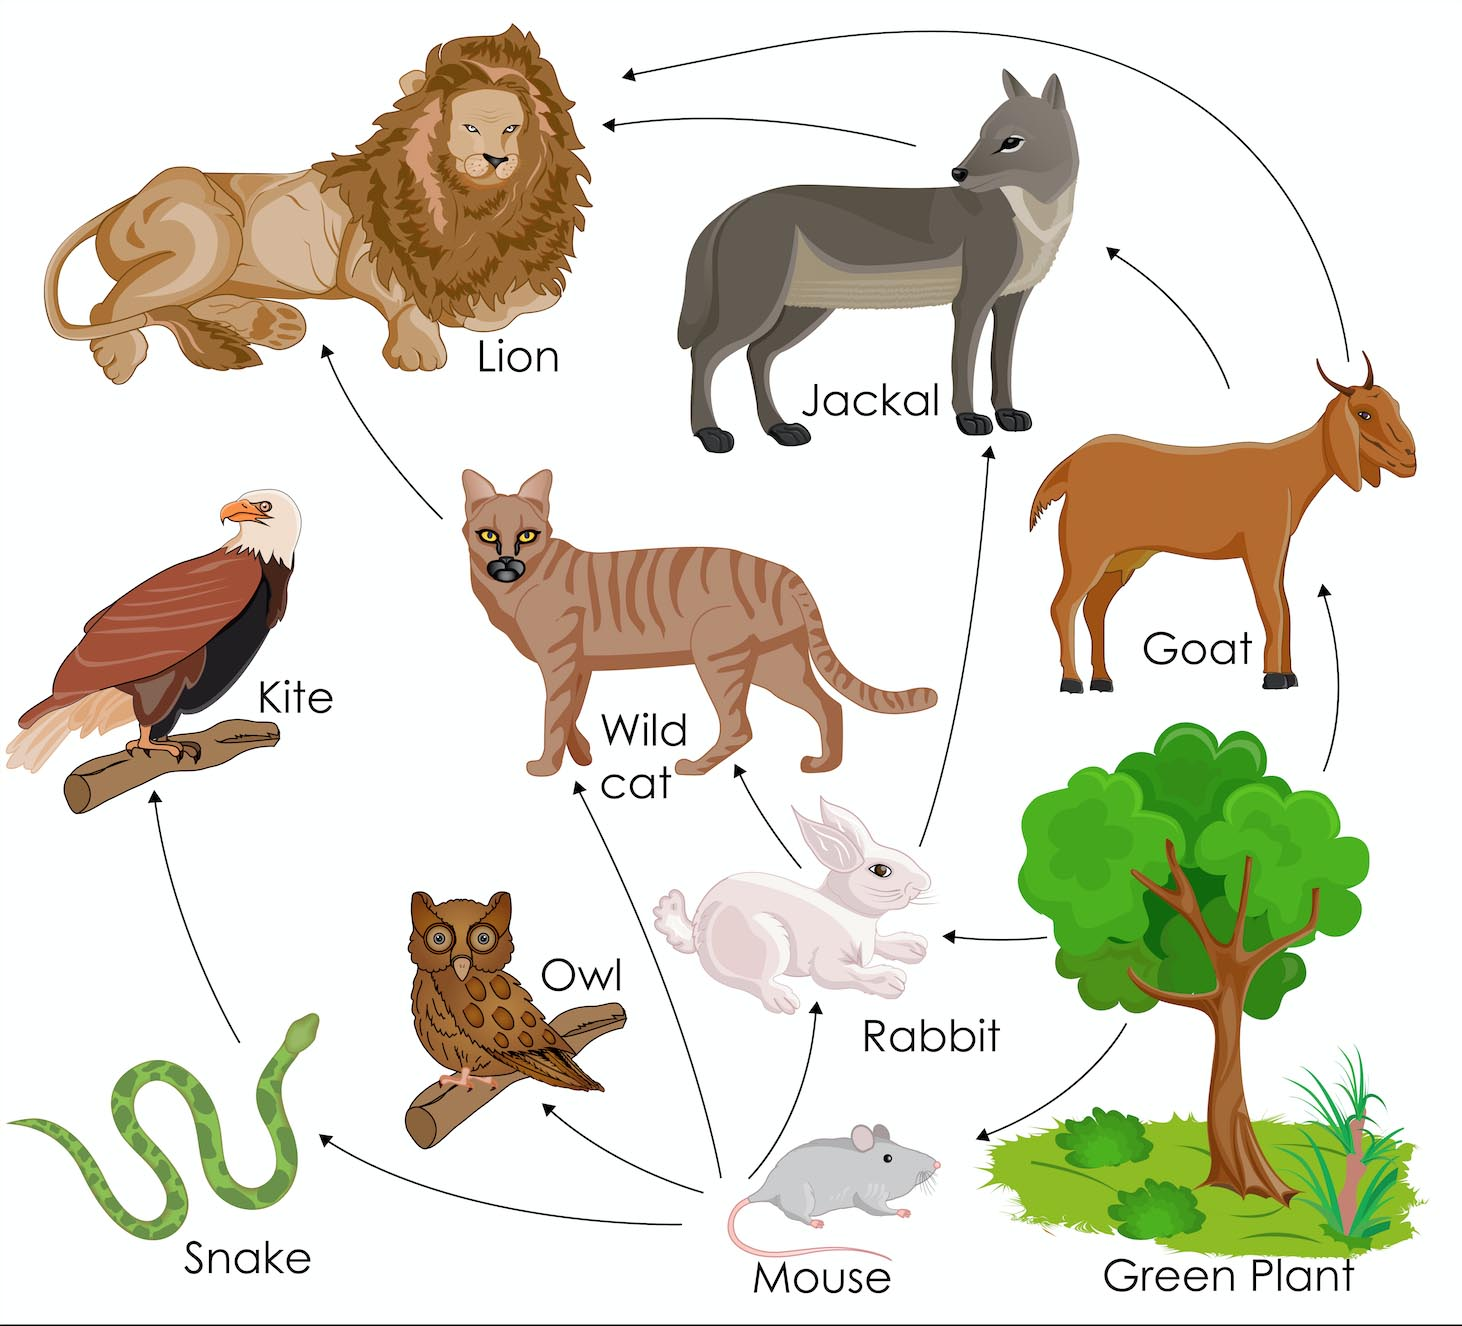 wolf food chain diagram fog light wiring without relay webs in an ecosystem science games legends of learning